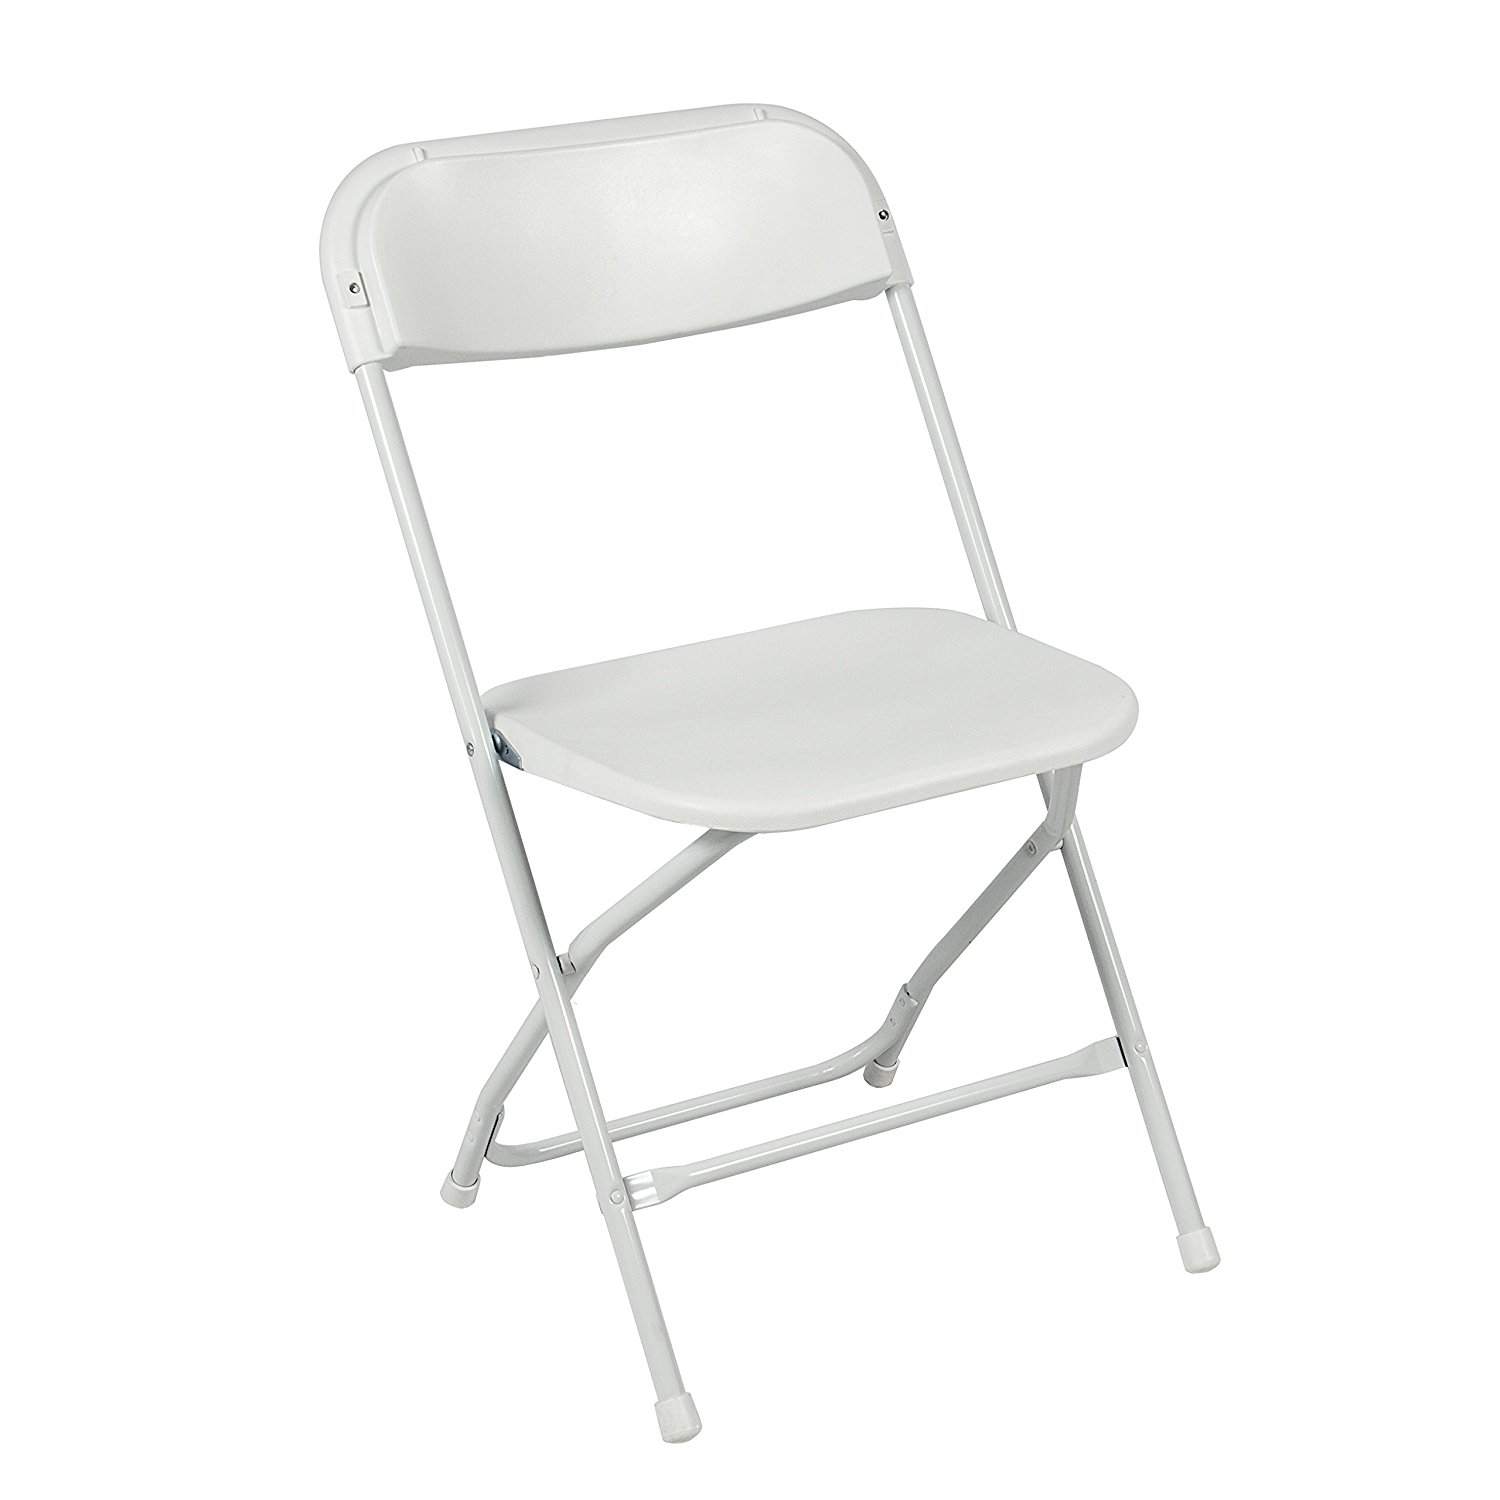 foldable chairs amazon.com: best choice products (5) commercial white plastic folding chairs  stackable wedding ZCVSLEV